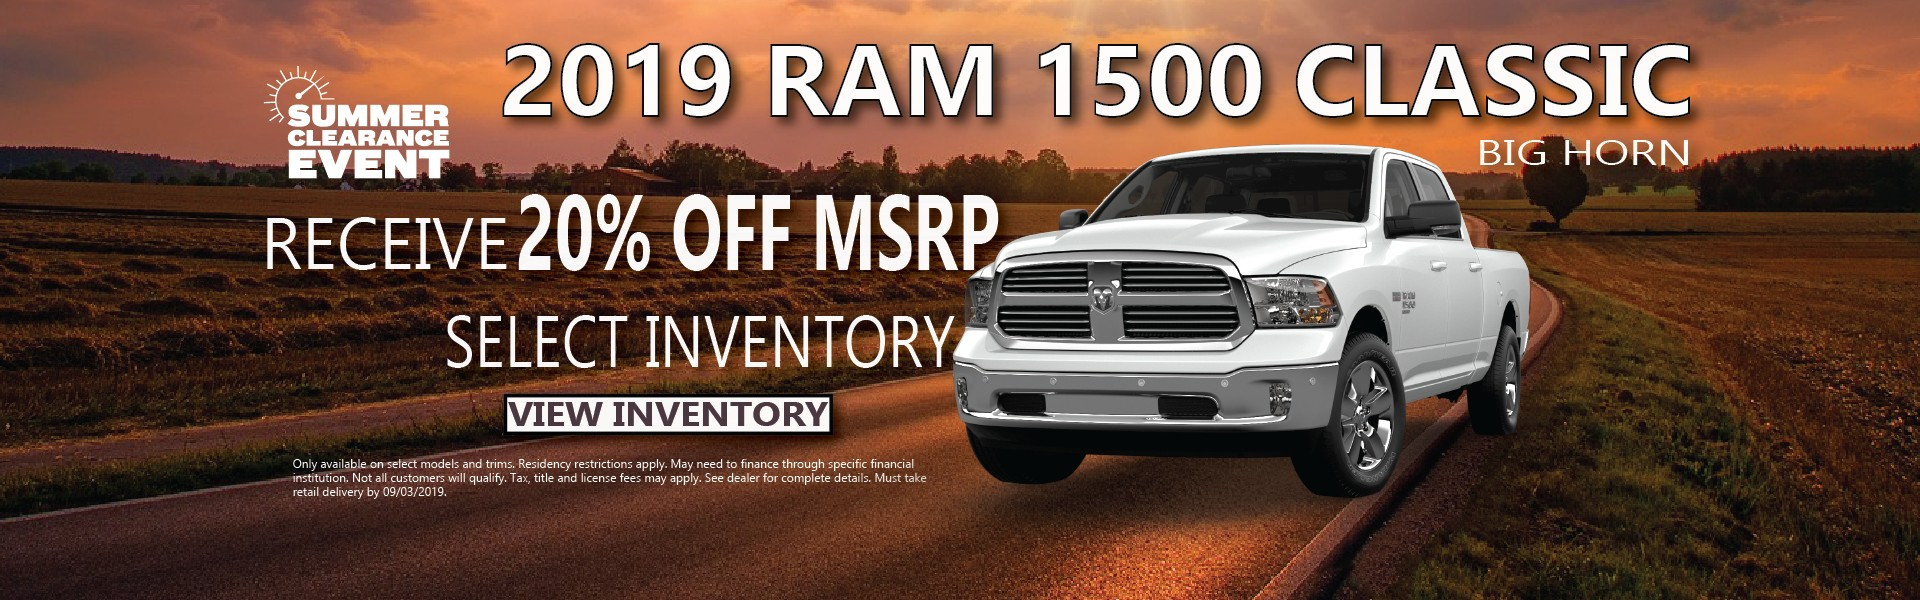 2019 Ram 1500 Classic Finance Offer